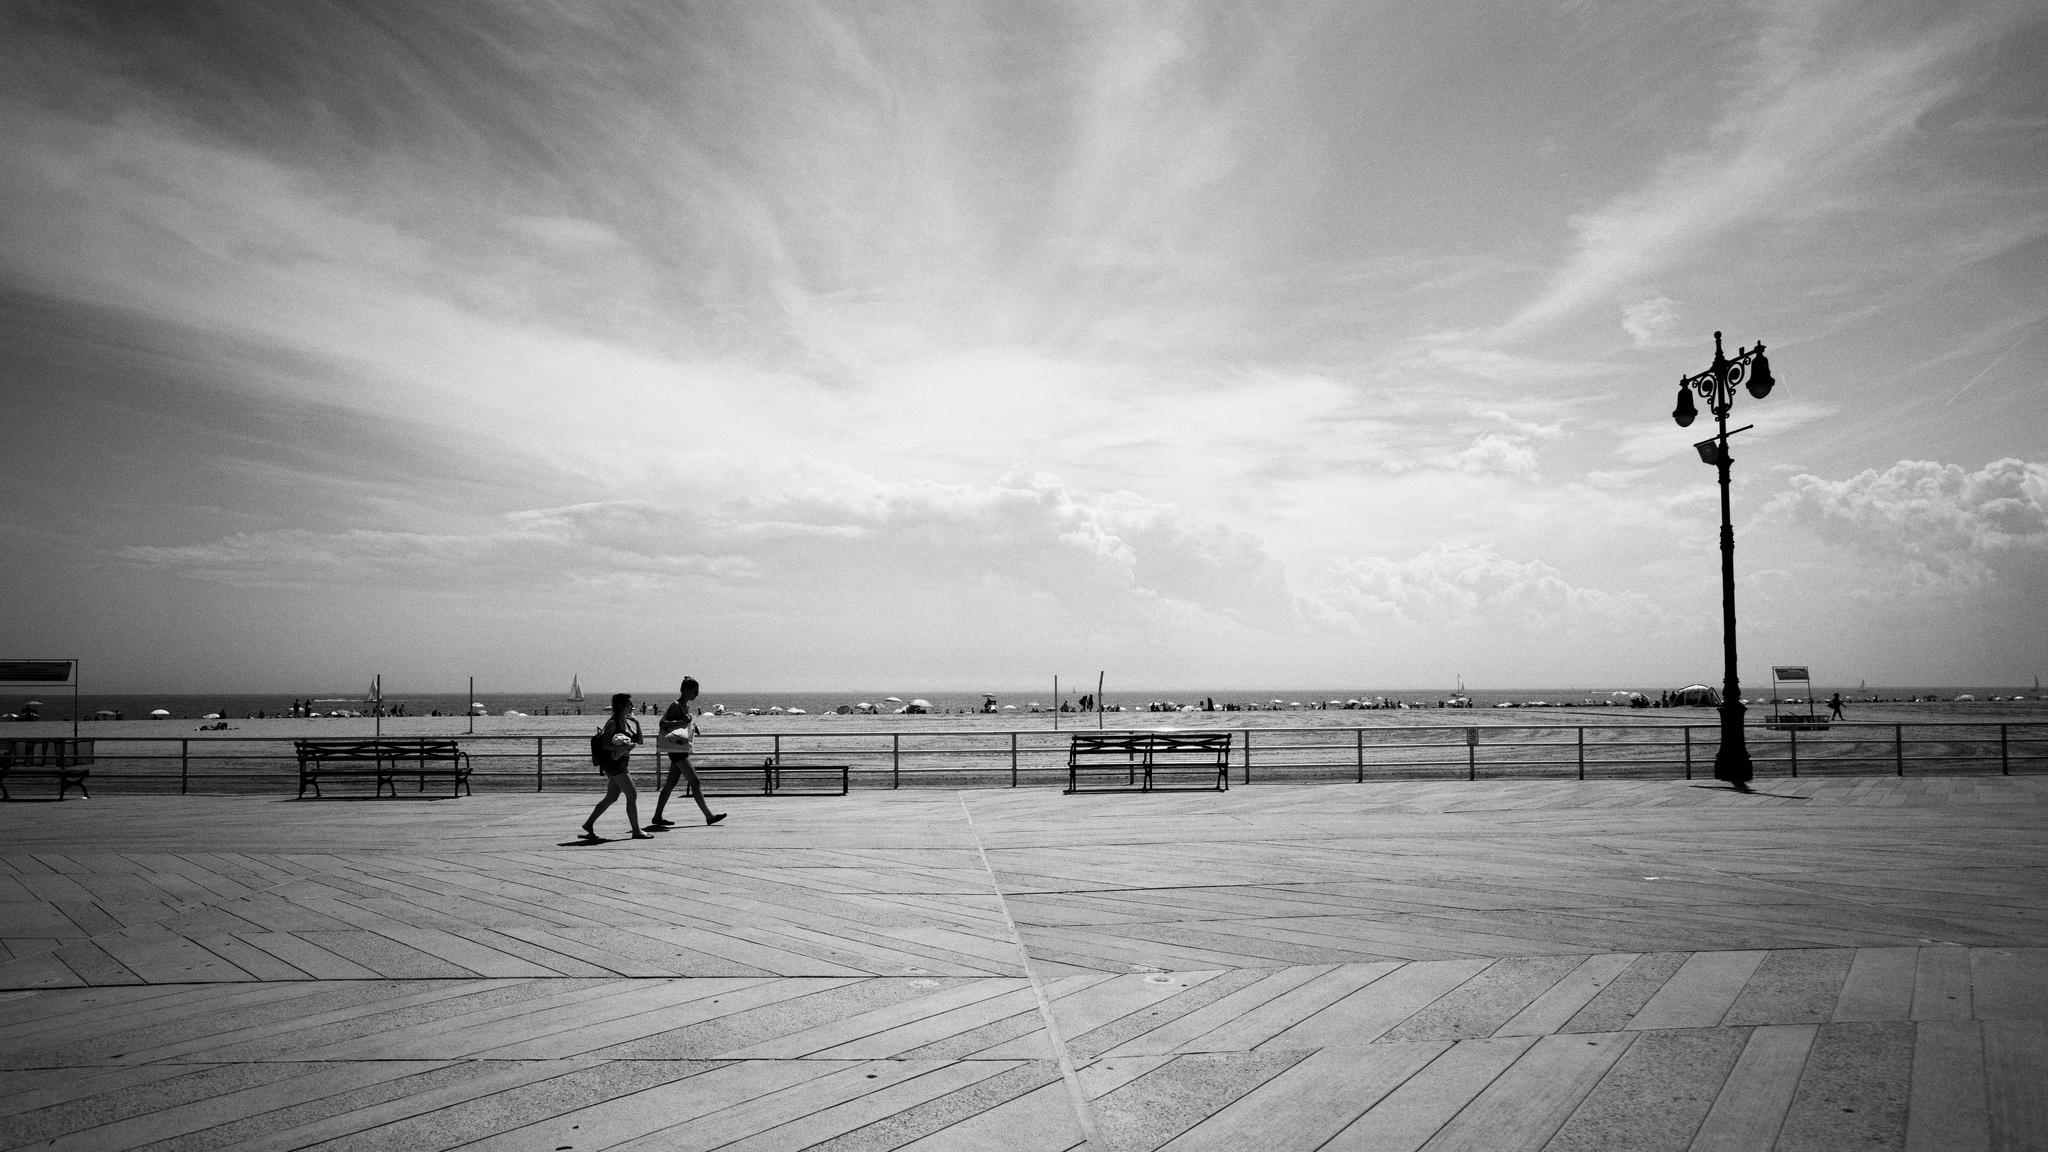 (Sony ILCE-7RM2 + Zeiss Batis 18mm f/2.8) ISO 100 - I was melting on the boardwalk but happy we stuck around to capture this one.